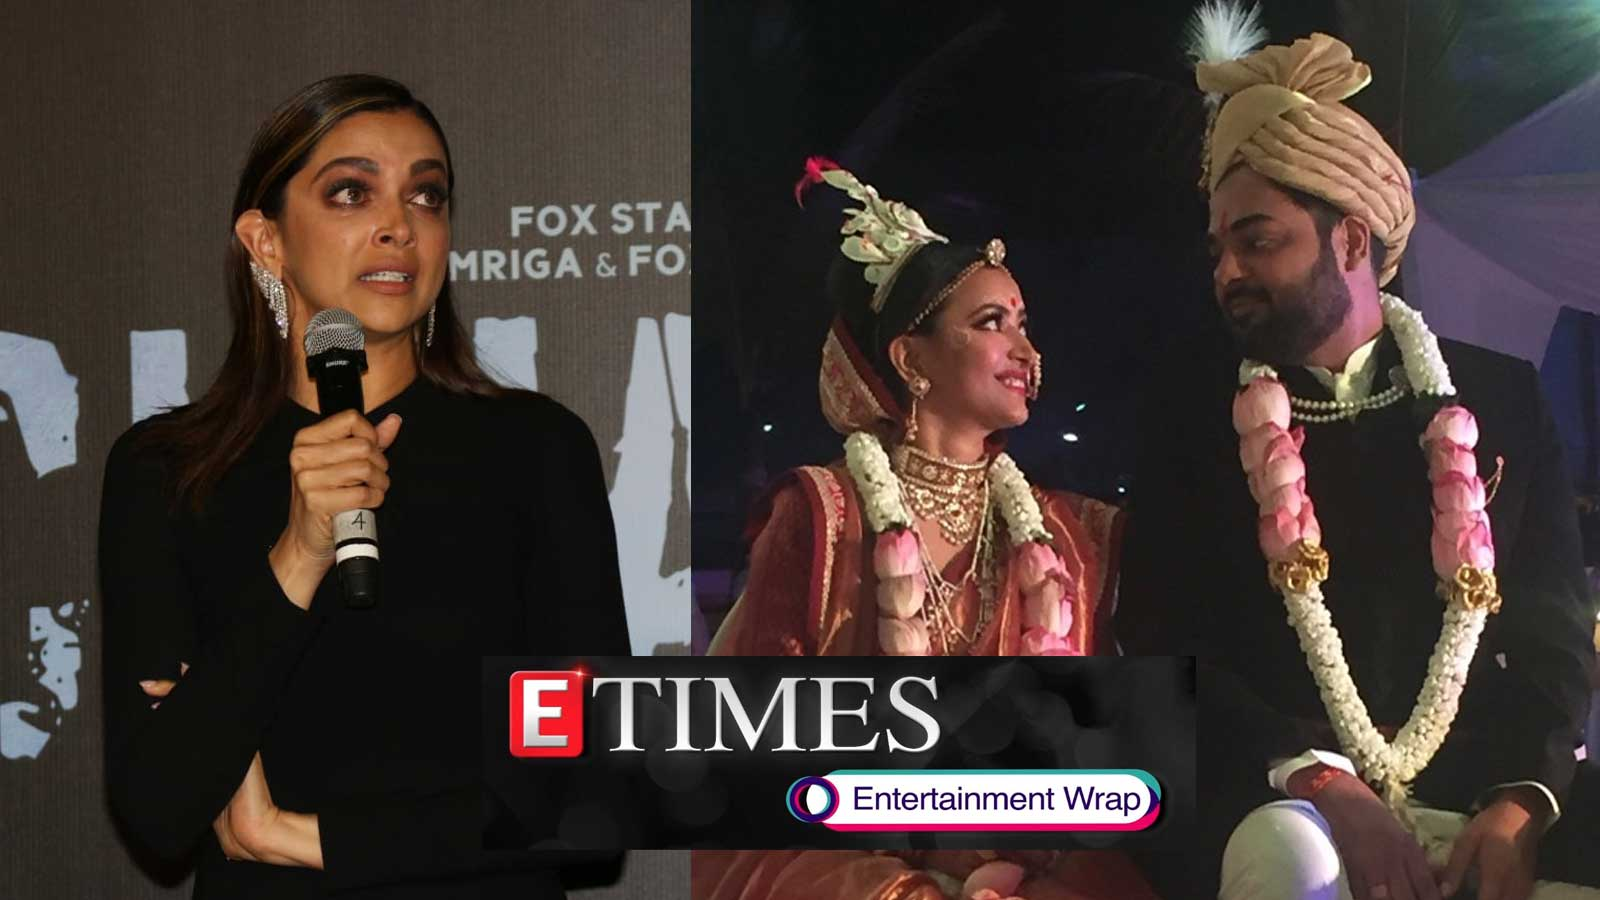 deepika-padukone-breaks-down-in-tears-at-chhapaak-trailer-launch-shweta-basu-prasad-announces-separation-with-rohit-mittal-and-more